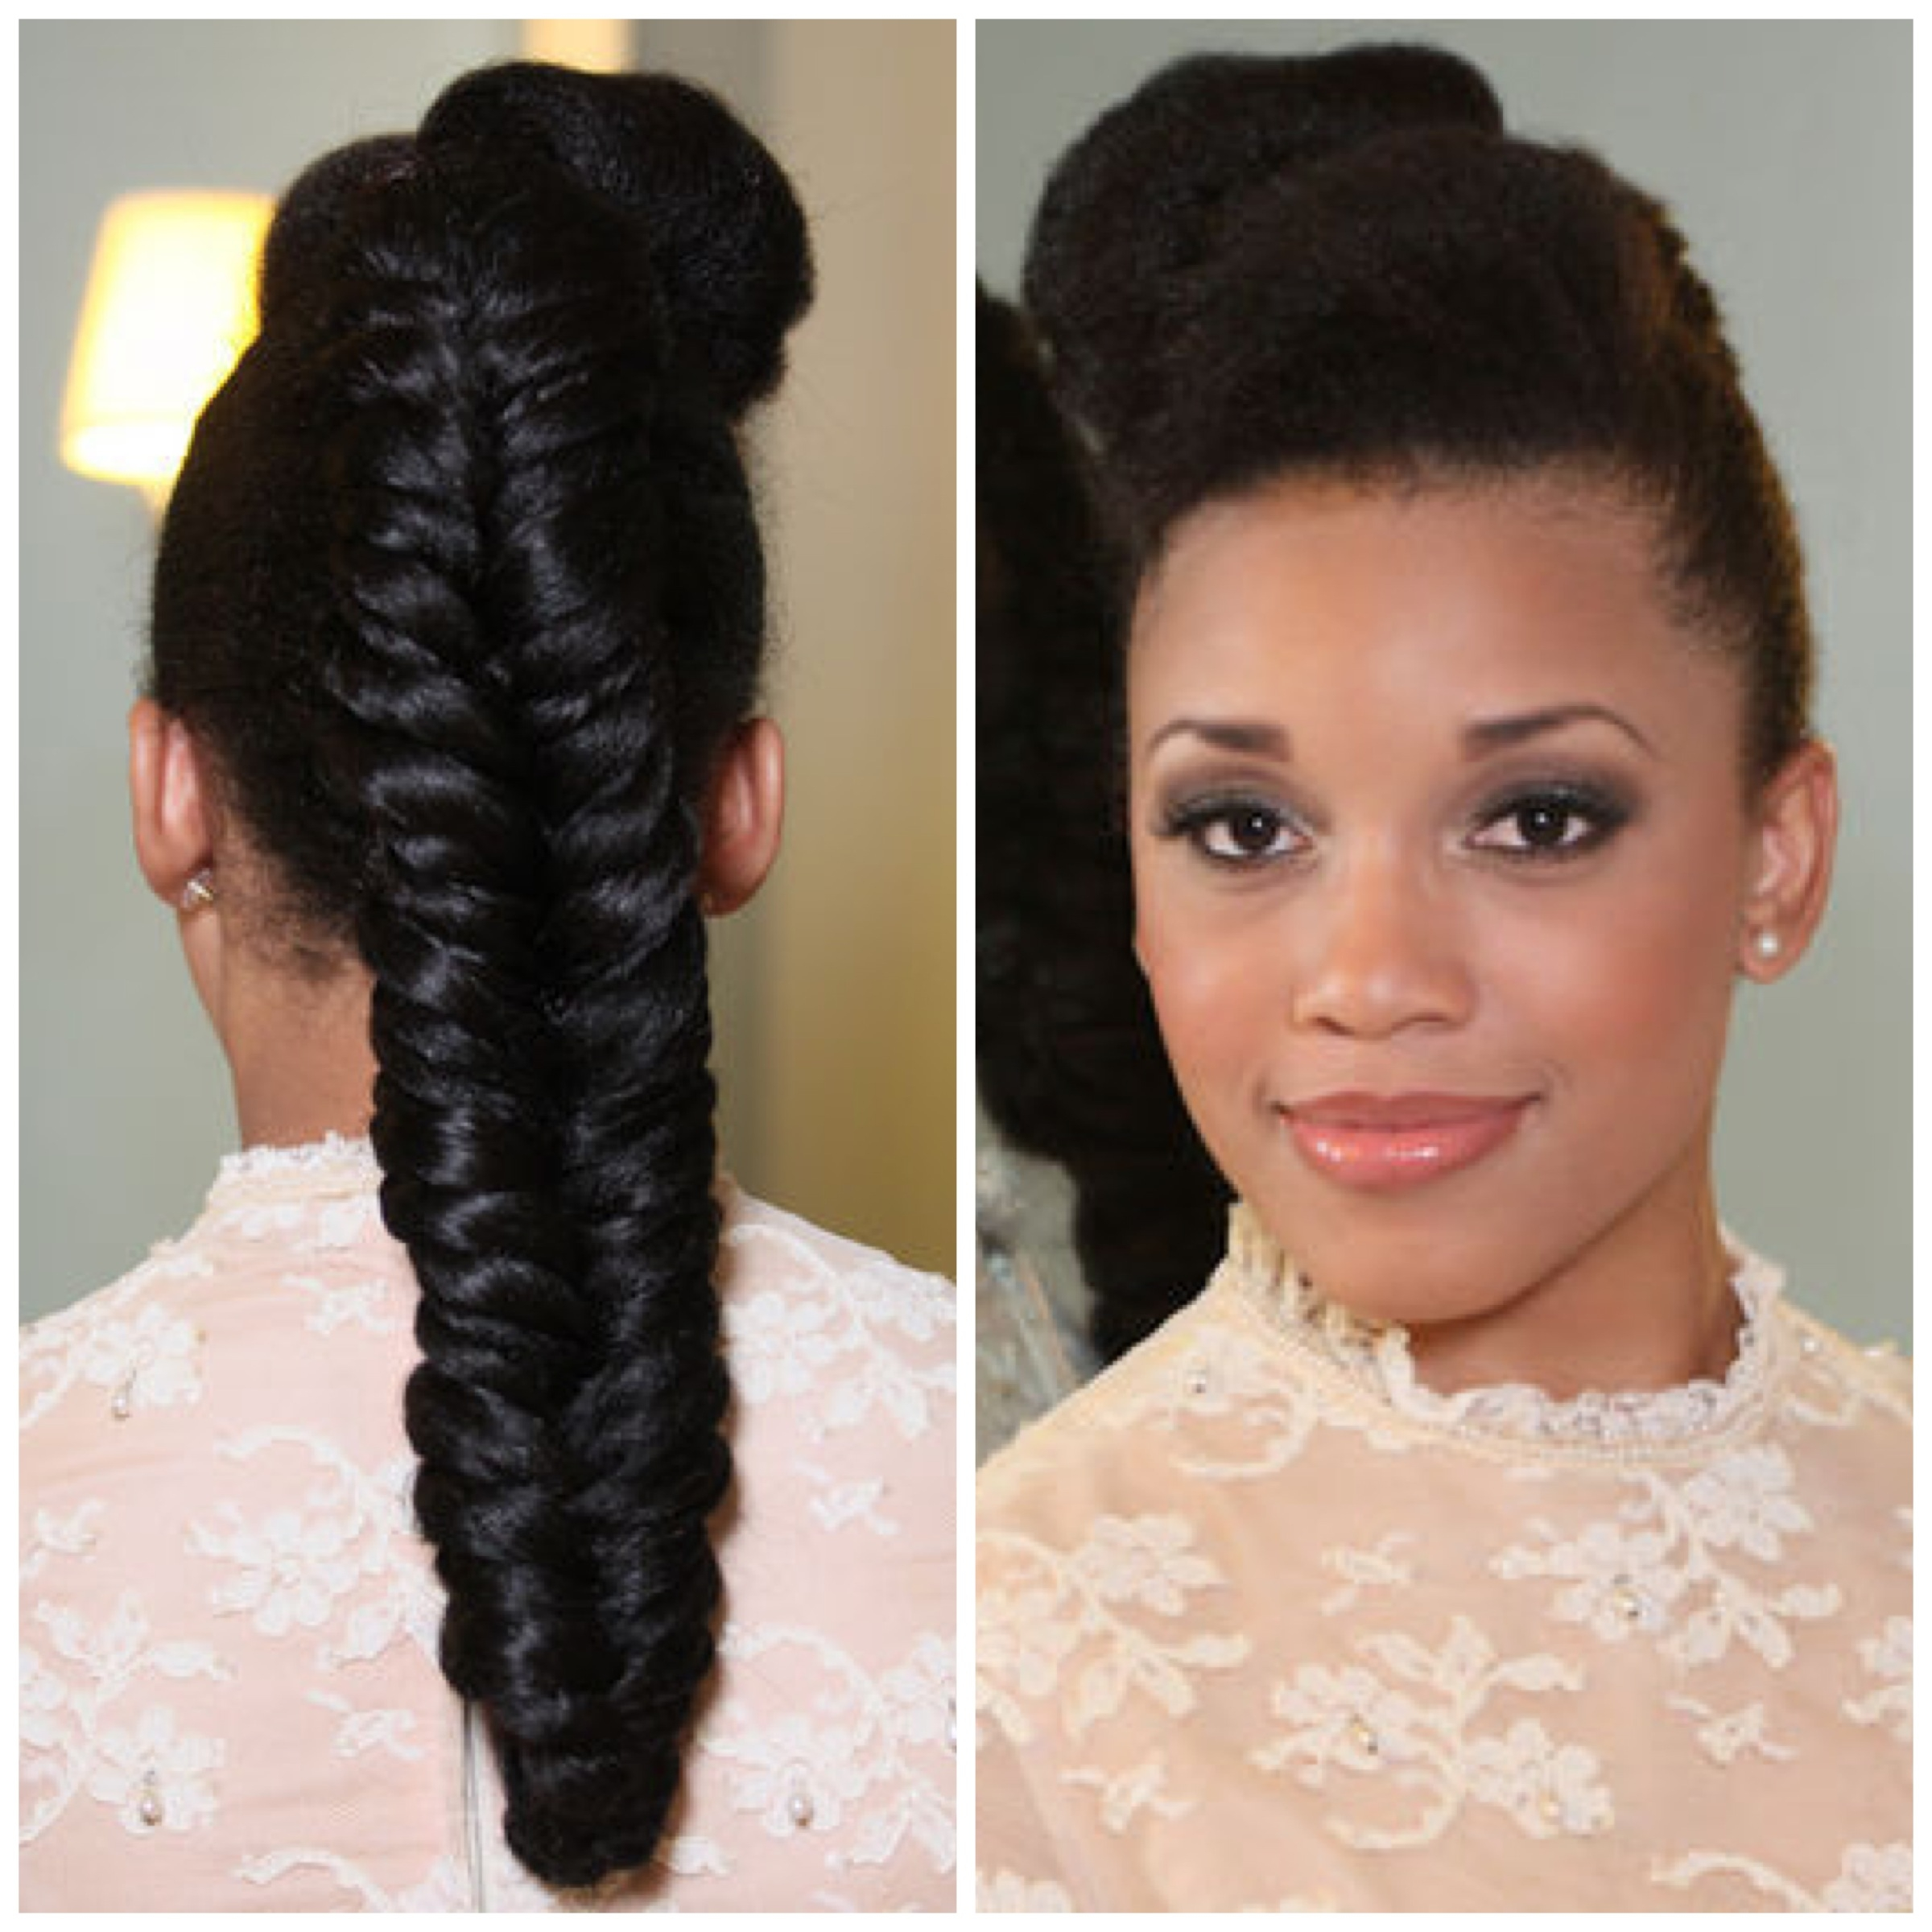 Wondrous Top 21 Fishtail Braid Hairstyles You39Ll Love Hairstyle Inspiration Daily Dogsangcom